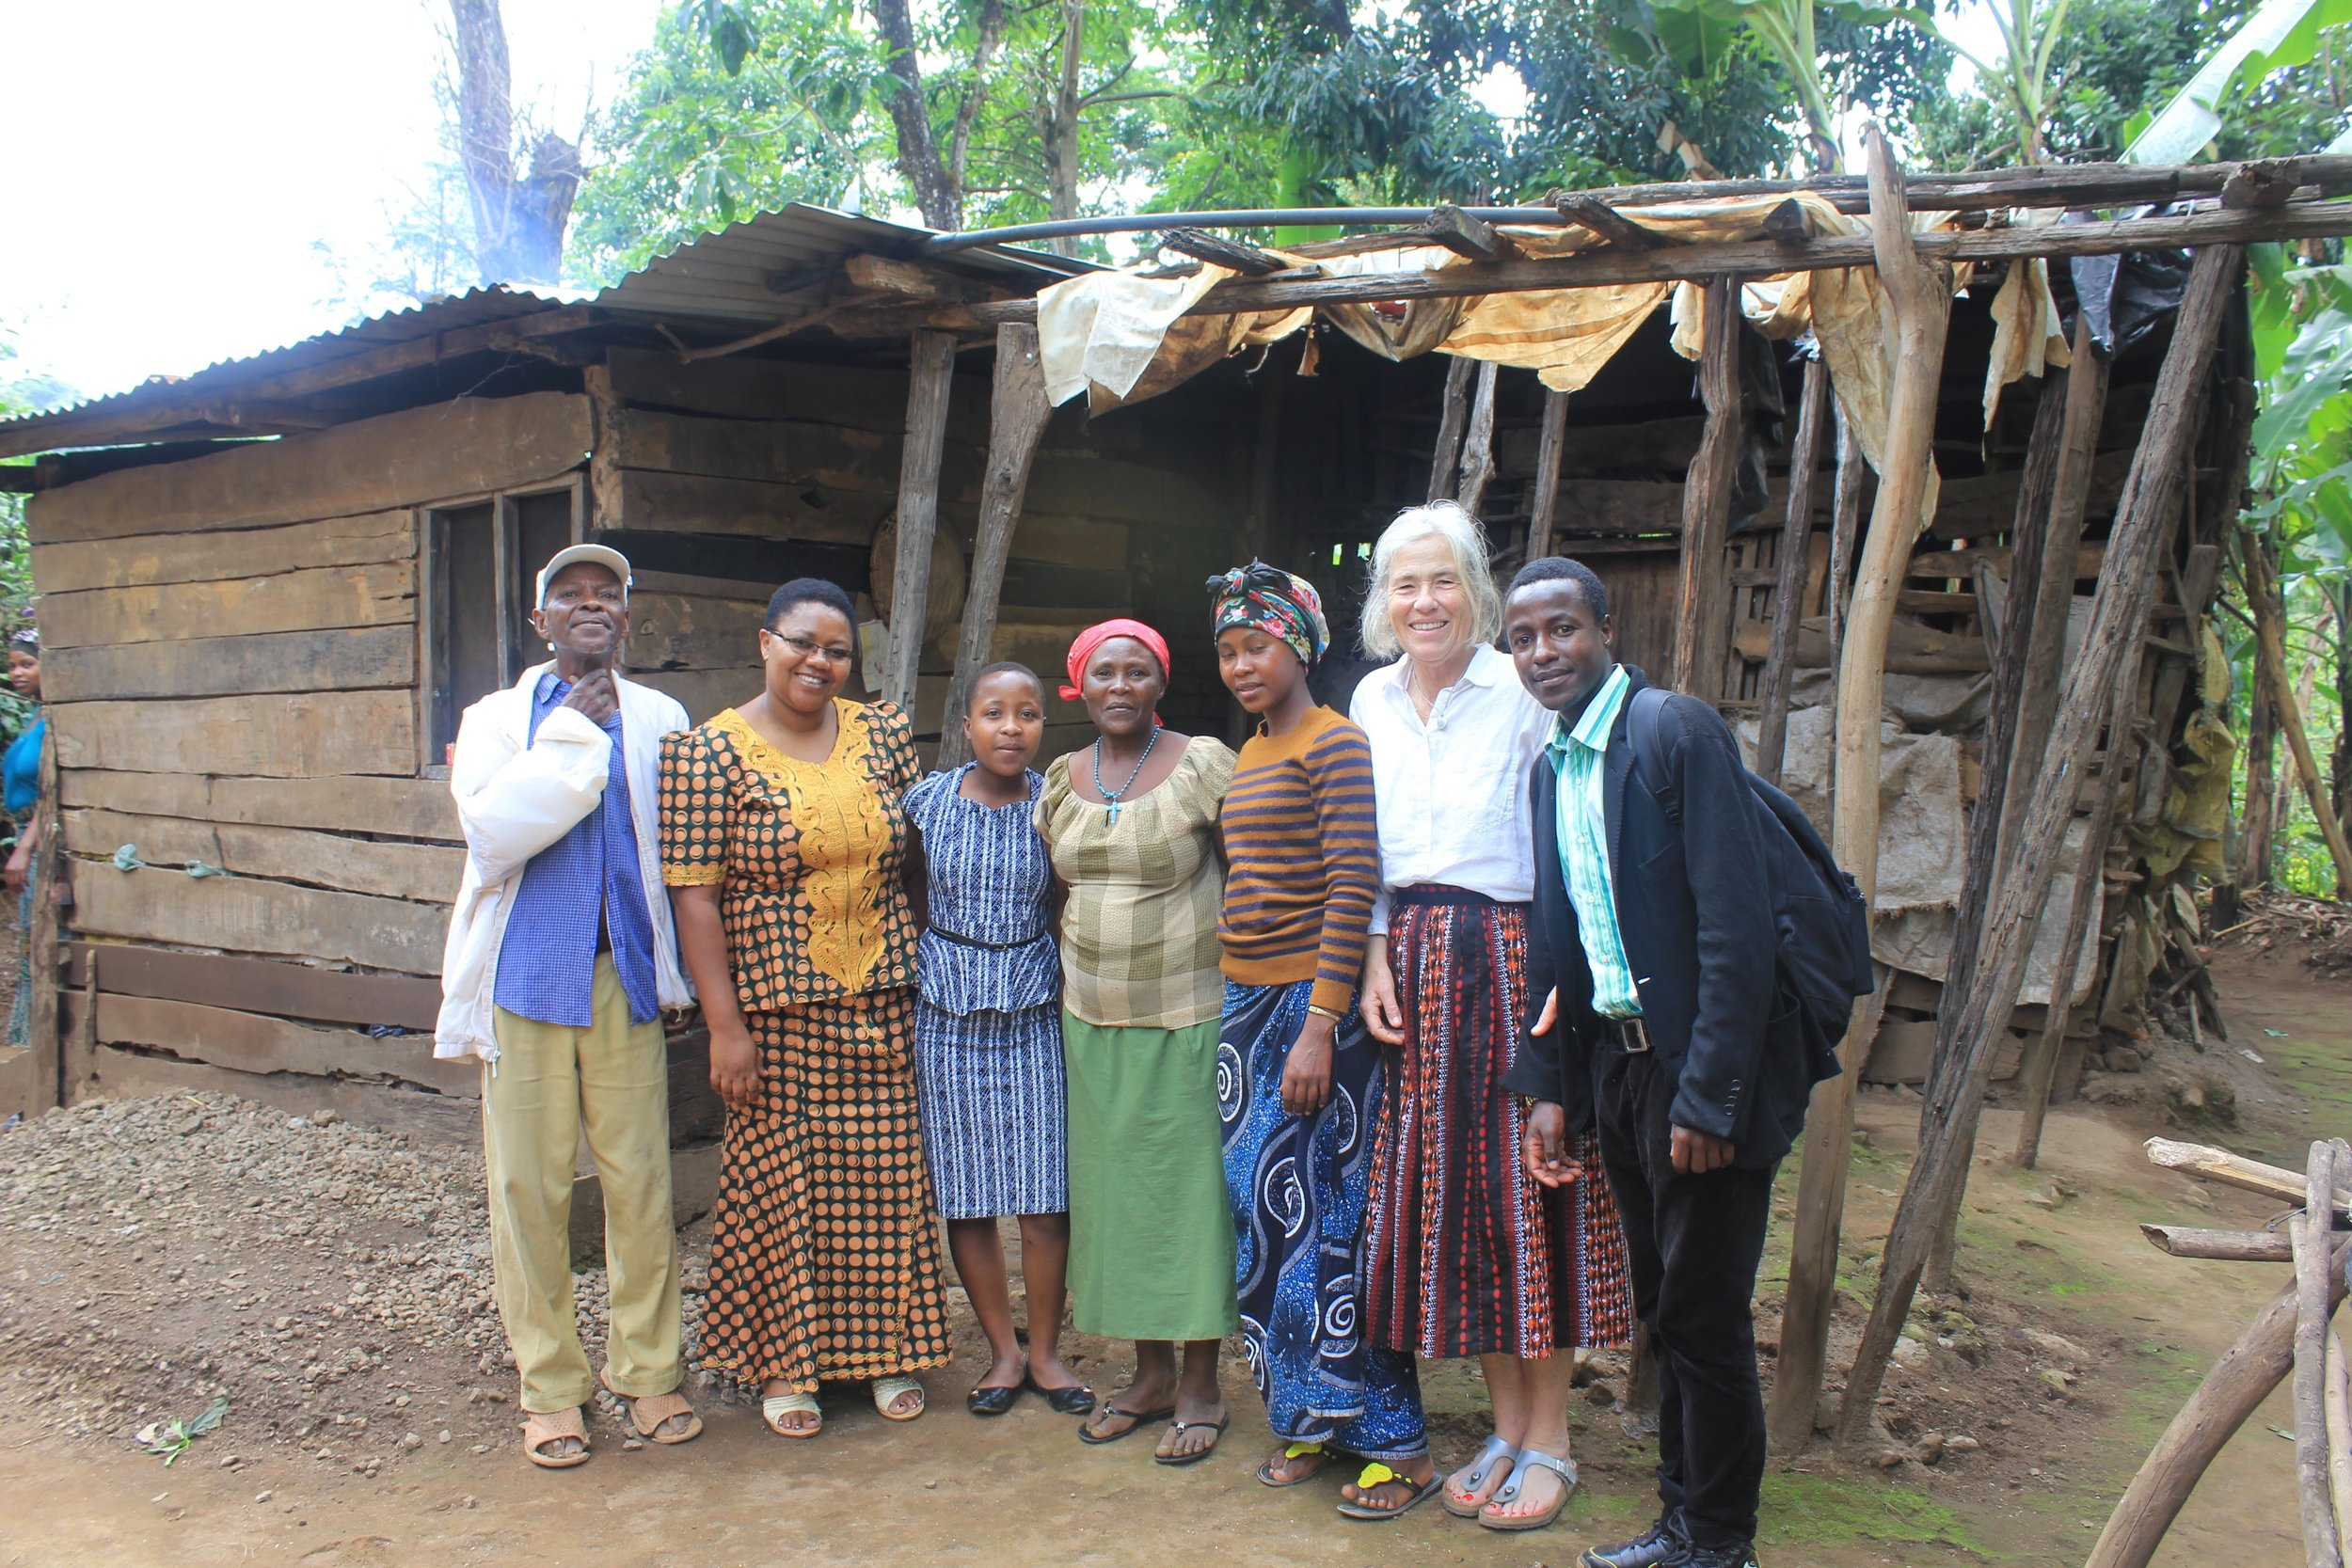 Melanie with her family and TGFT director, Estahappy and founder. (Courtesy of Nano Chatfield / The Girls Foundation of Tanzania)